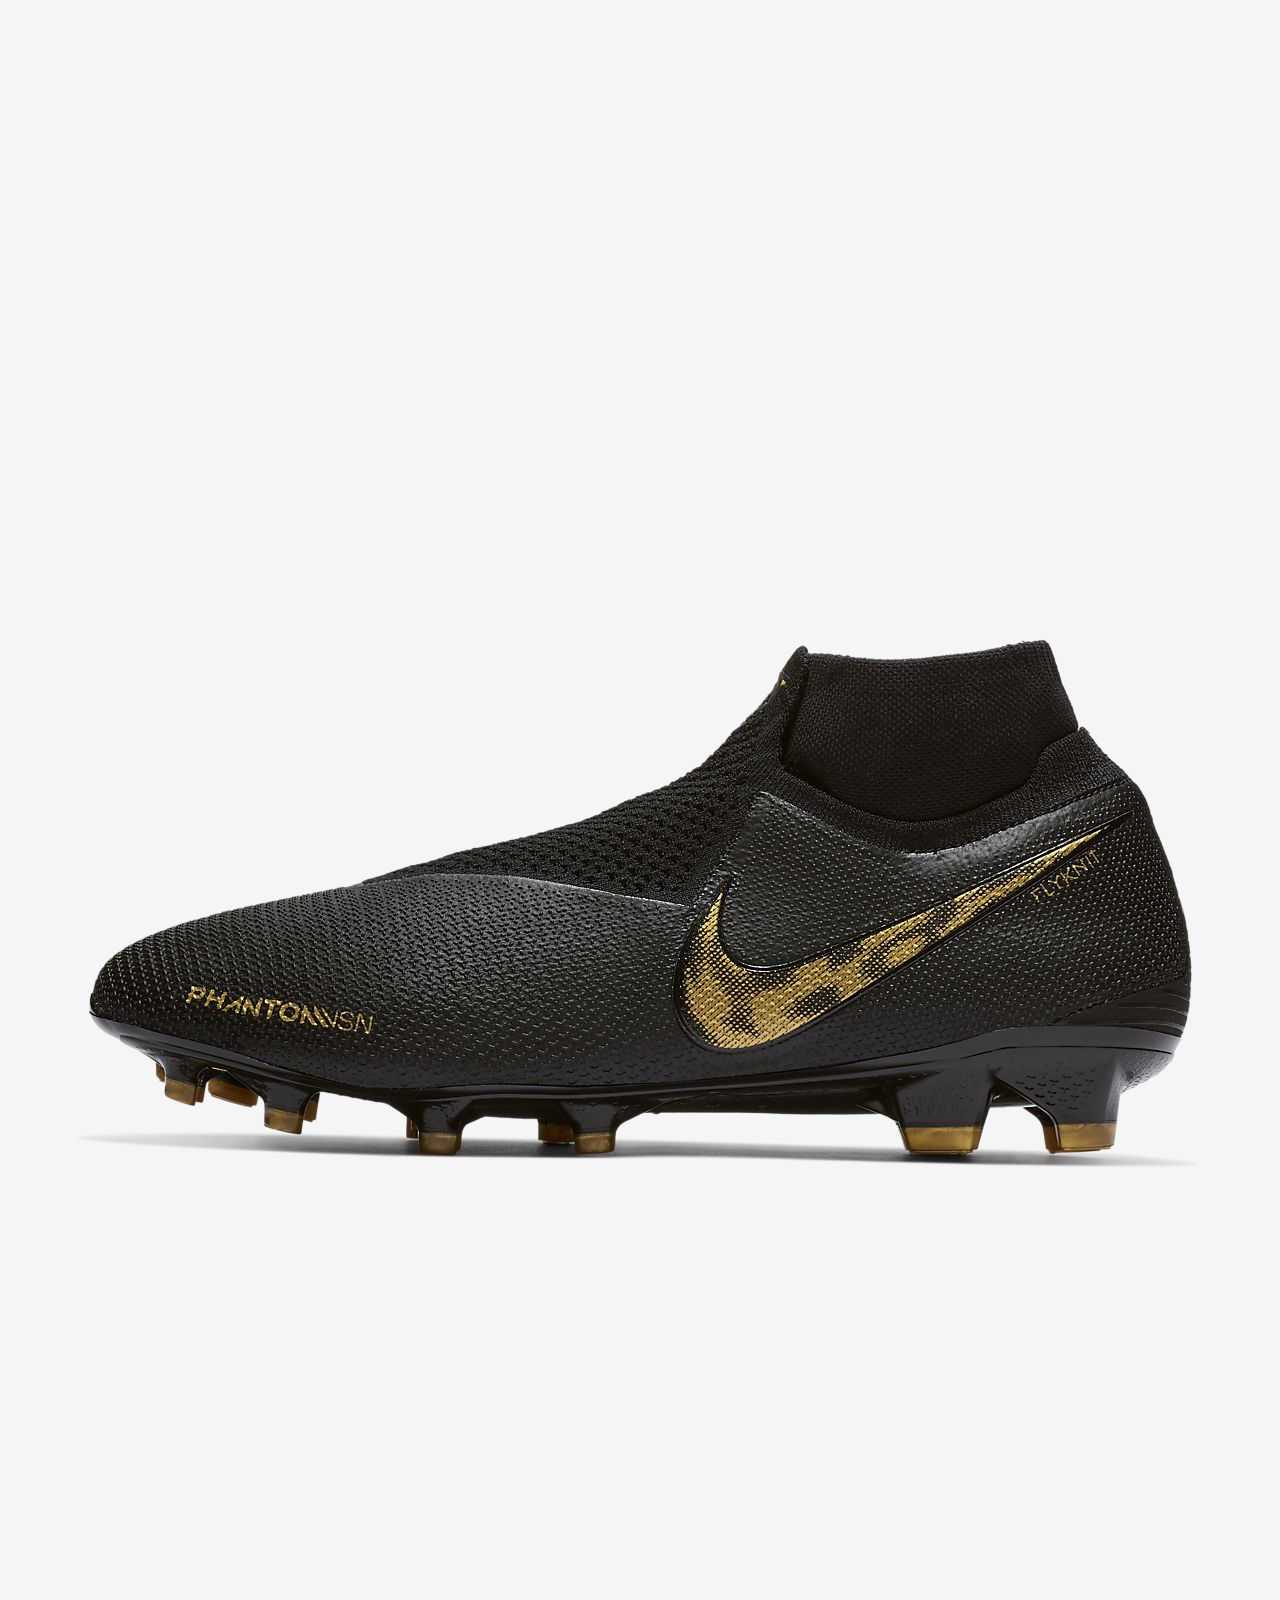 Nike PhantomVSN Elite Dynamic Fit FG Firm-Ground Soccer Cleat